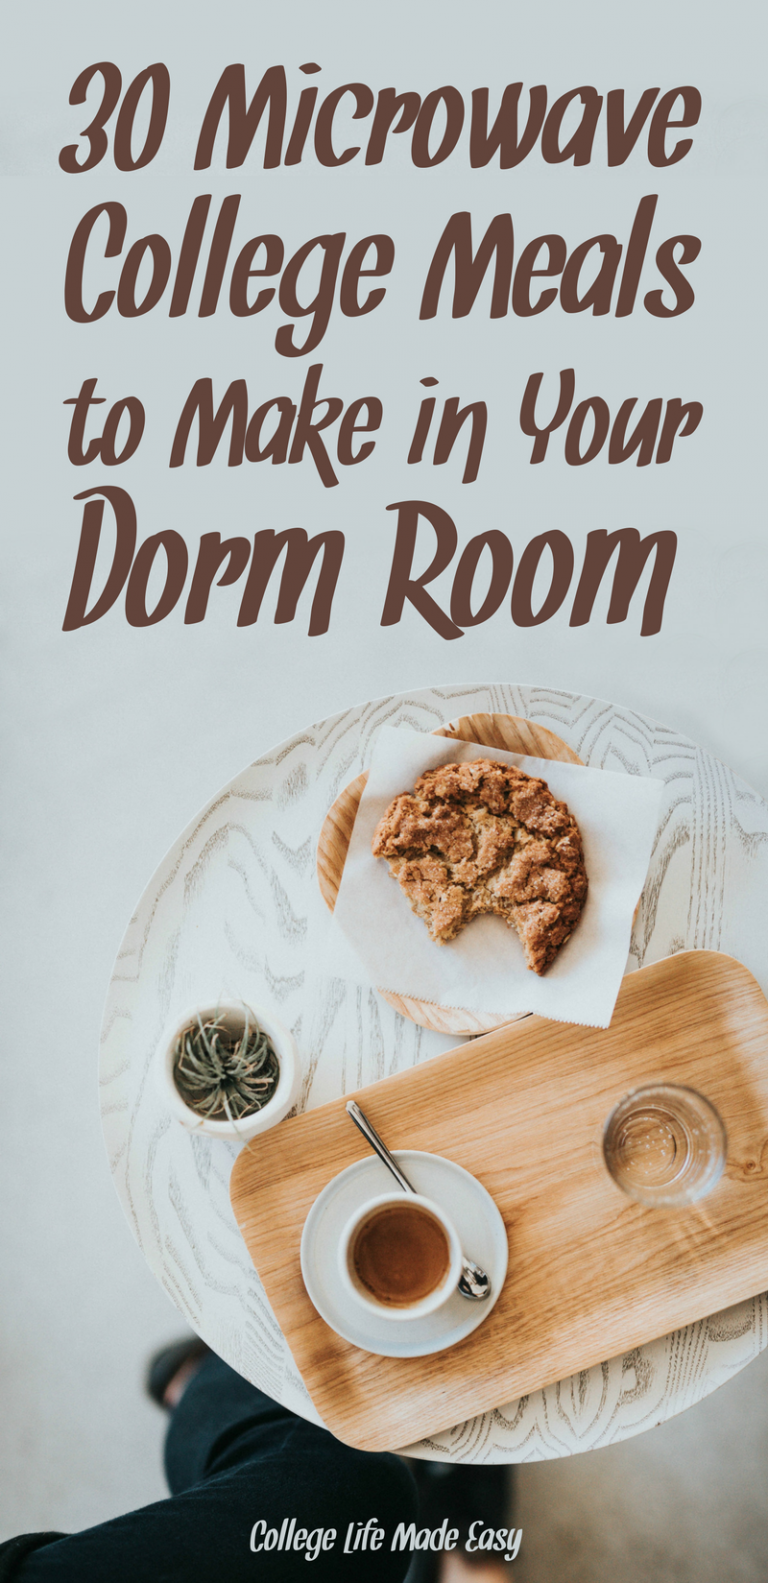 30 Microwave College Meals To Make In Your Dorm Room College Meals Easy College Meals Dorm Room Snacks